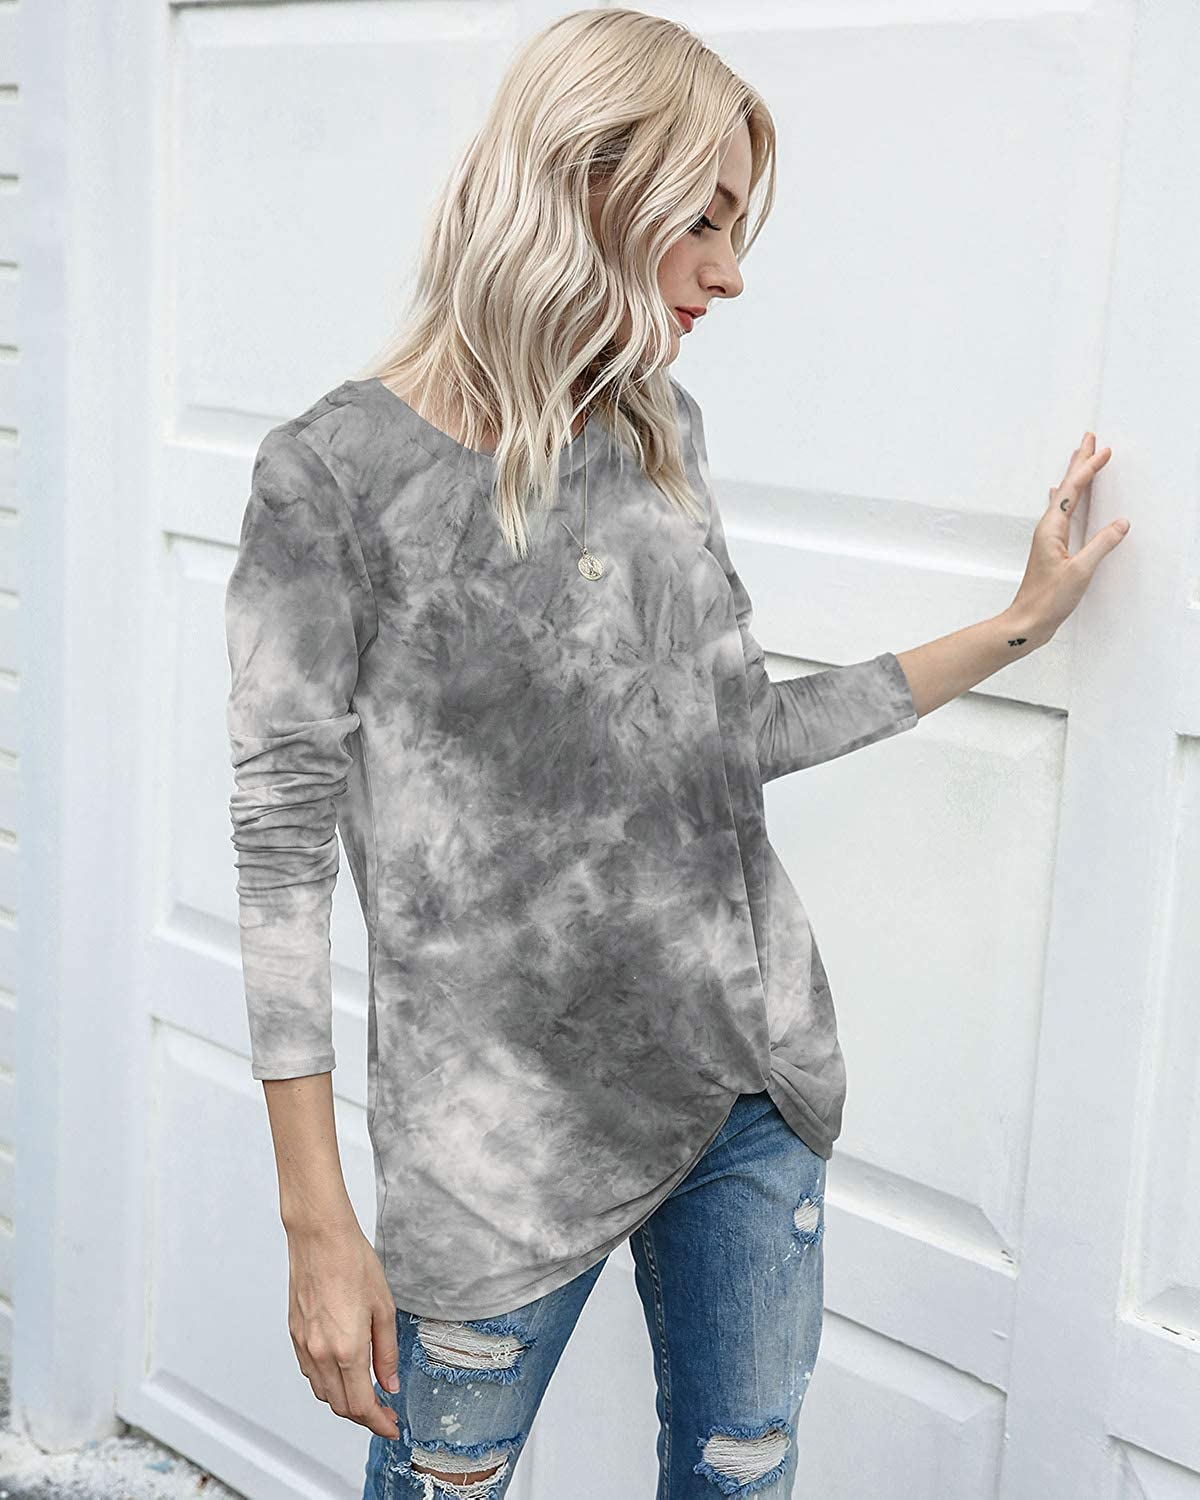 SENFURE Womens Tops Casual Long Sleeve Round Neck Tie Dye Comfy Casual Twist Knot Tunics Tops Blouses Tshirts